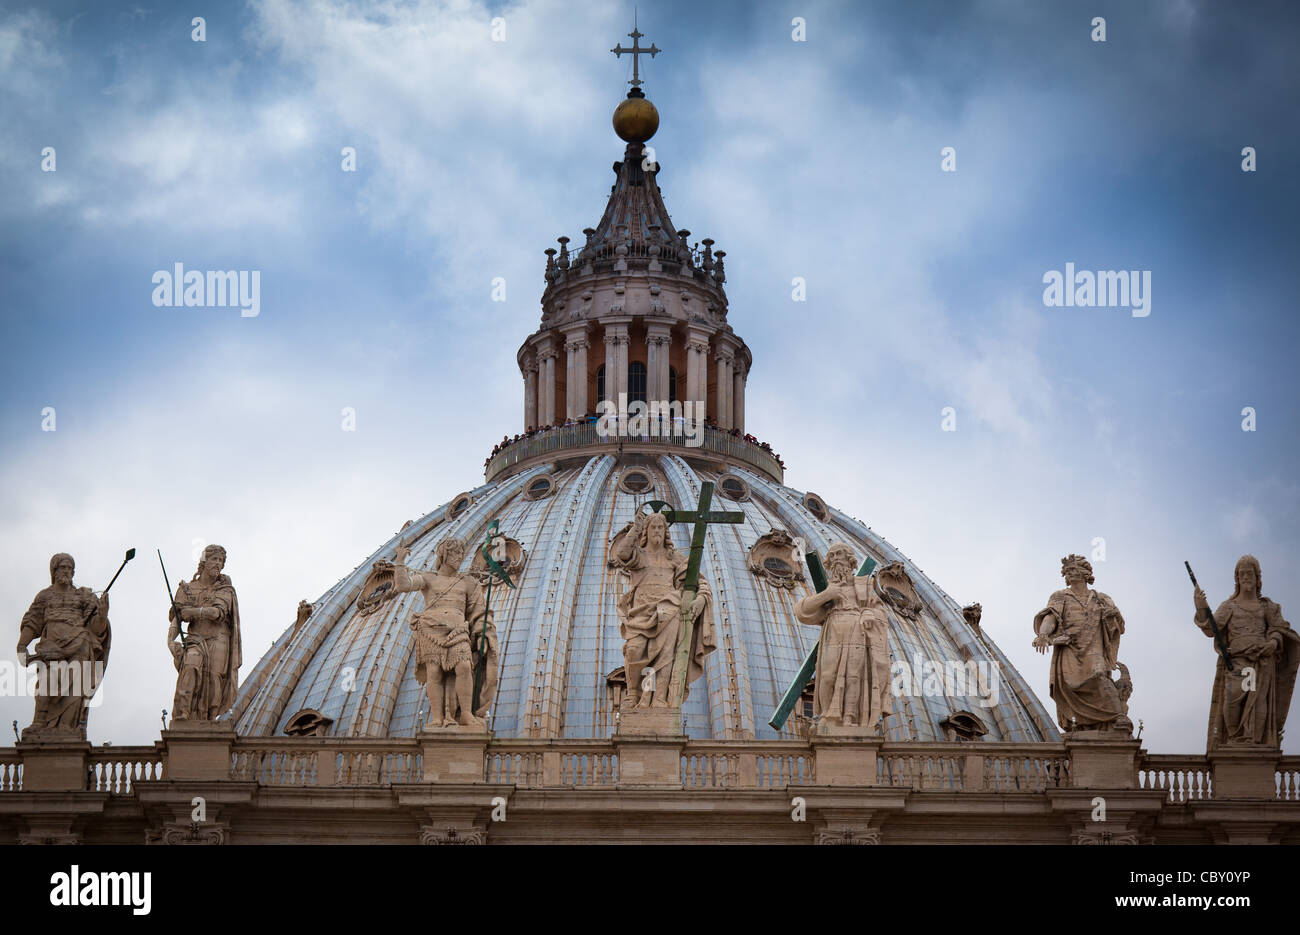 Roof of St. Peter's Basilica in the Vatican, Rome, Italy - Stock Image